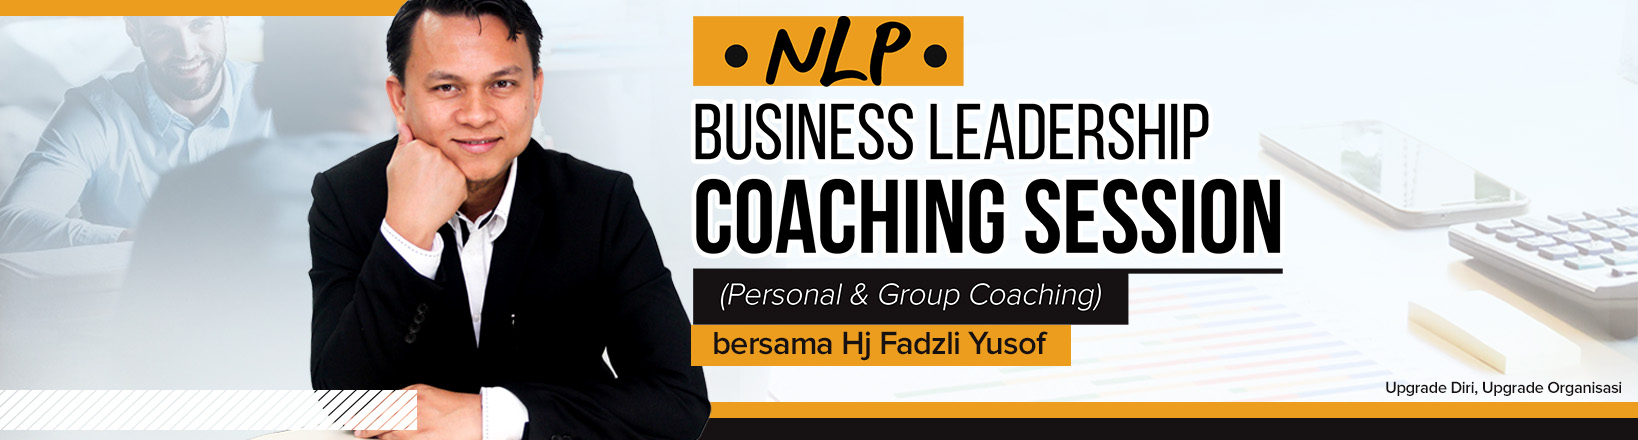 NLP & Business Leadership Coaching Session - NLP Malaysia